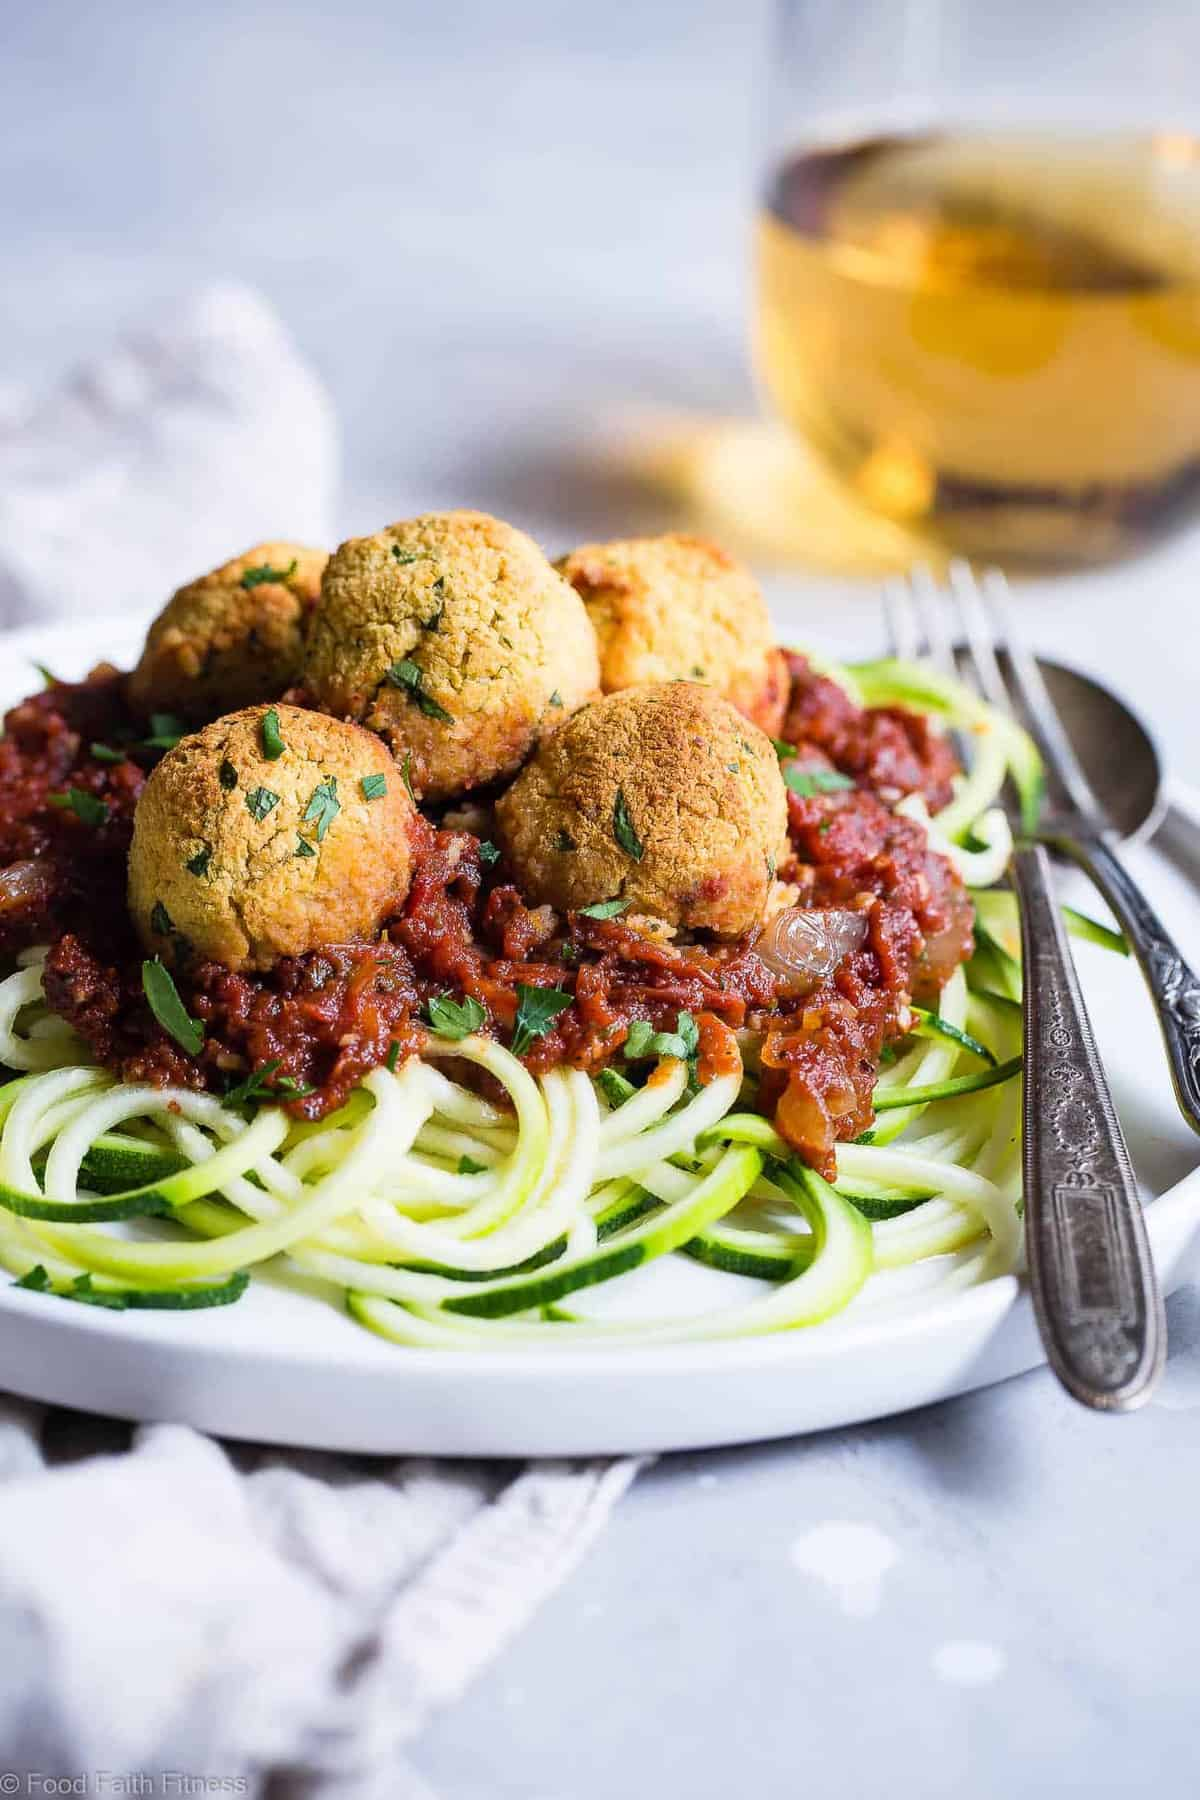 Gluten Free Vegan Chickpea Vegetarian Meatballs Recipe with Tomato Sauce -These meatless, gluten free meatballs are SO crispy, they will blow your mind! Serve them with an easy tomato sauce for a tasty, healthy dinner that's packed with plant protein and fiber! | #Foodfaithfitness | #Vegan #Glutenfree #Healthy #Vegetarian #Dairyfree